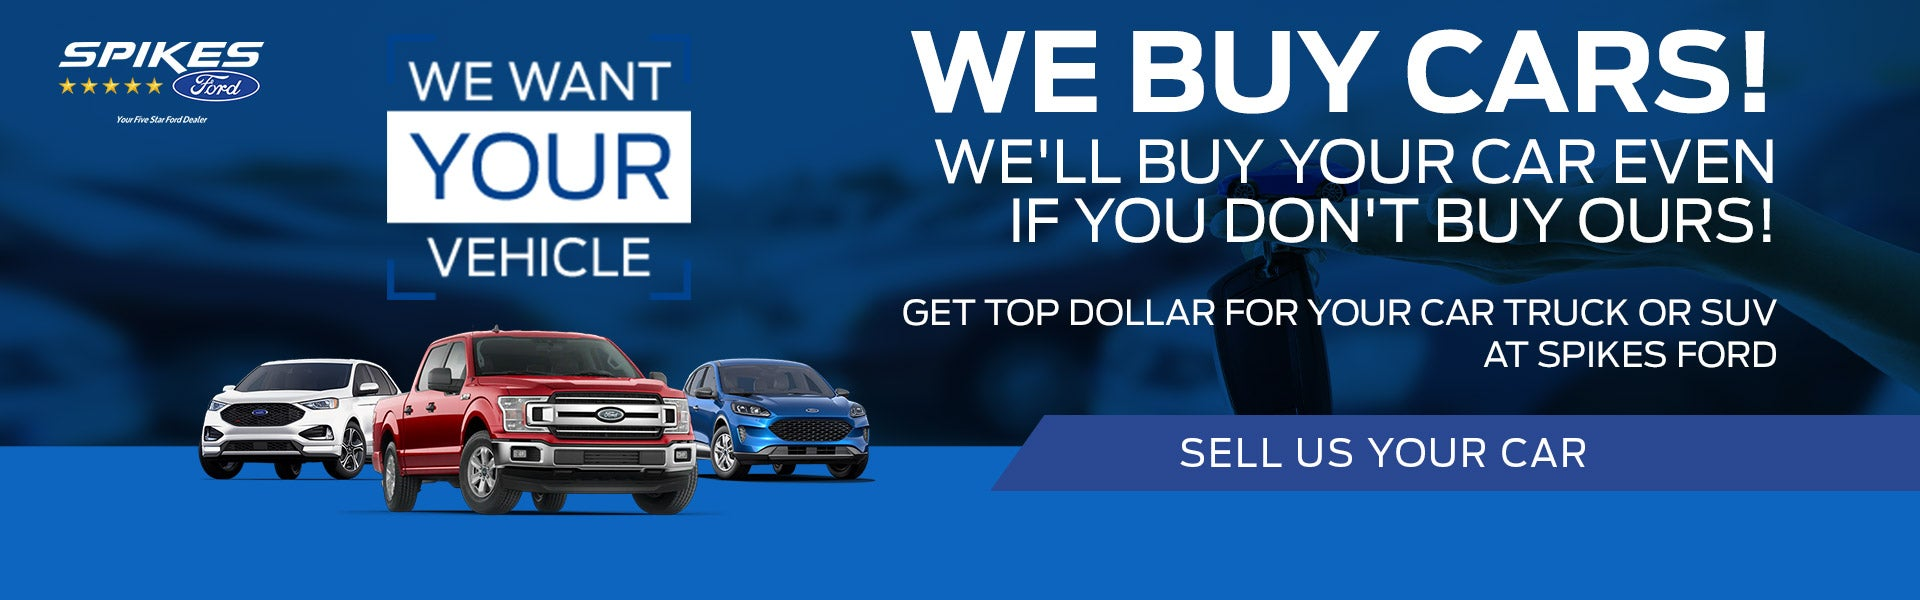 ford dealer in mission tx used cars mission spikes ford ford dealer in mission tx used cars